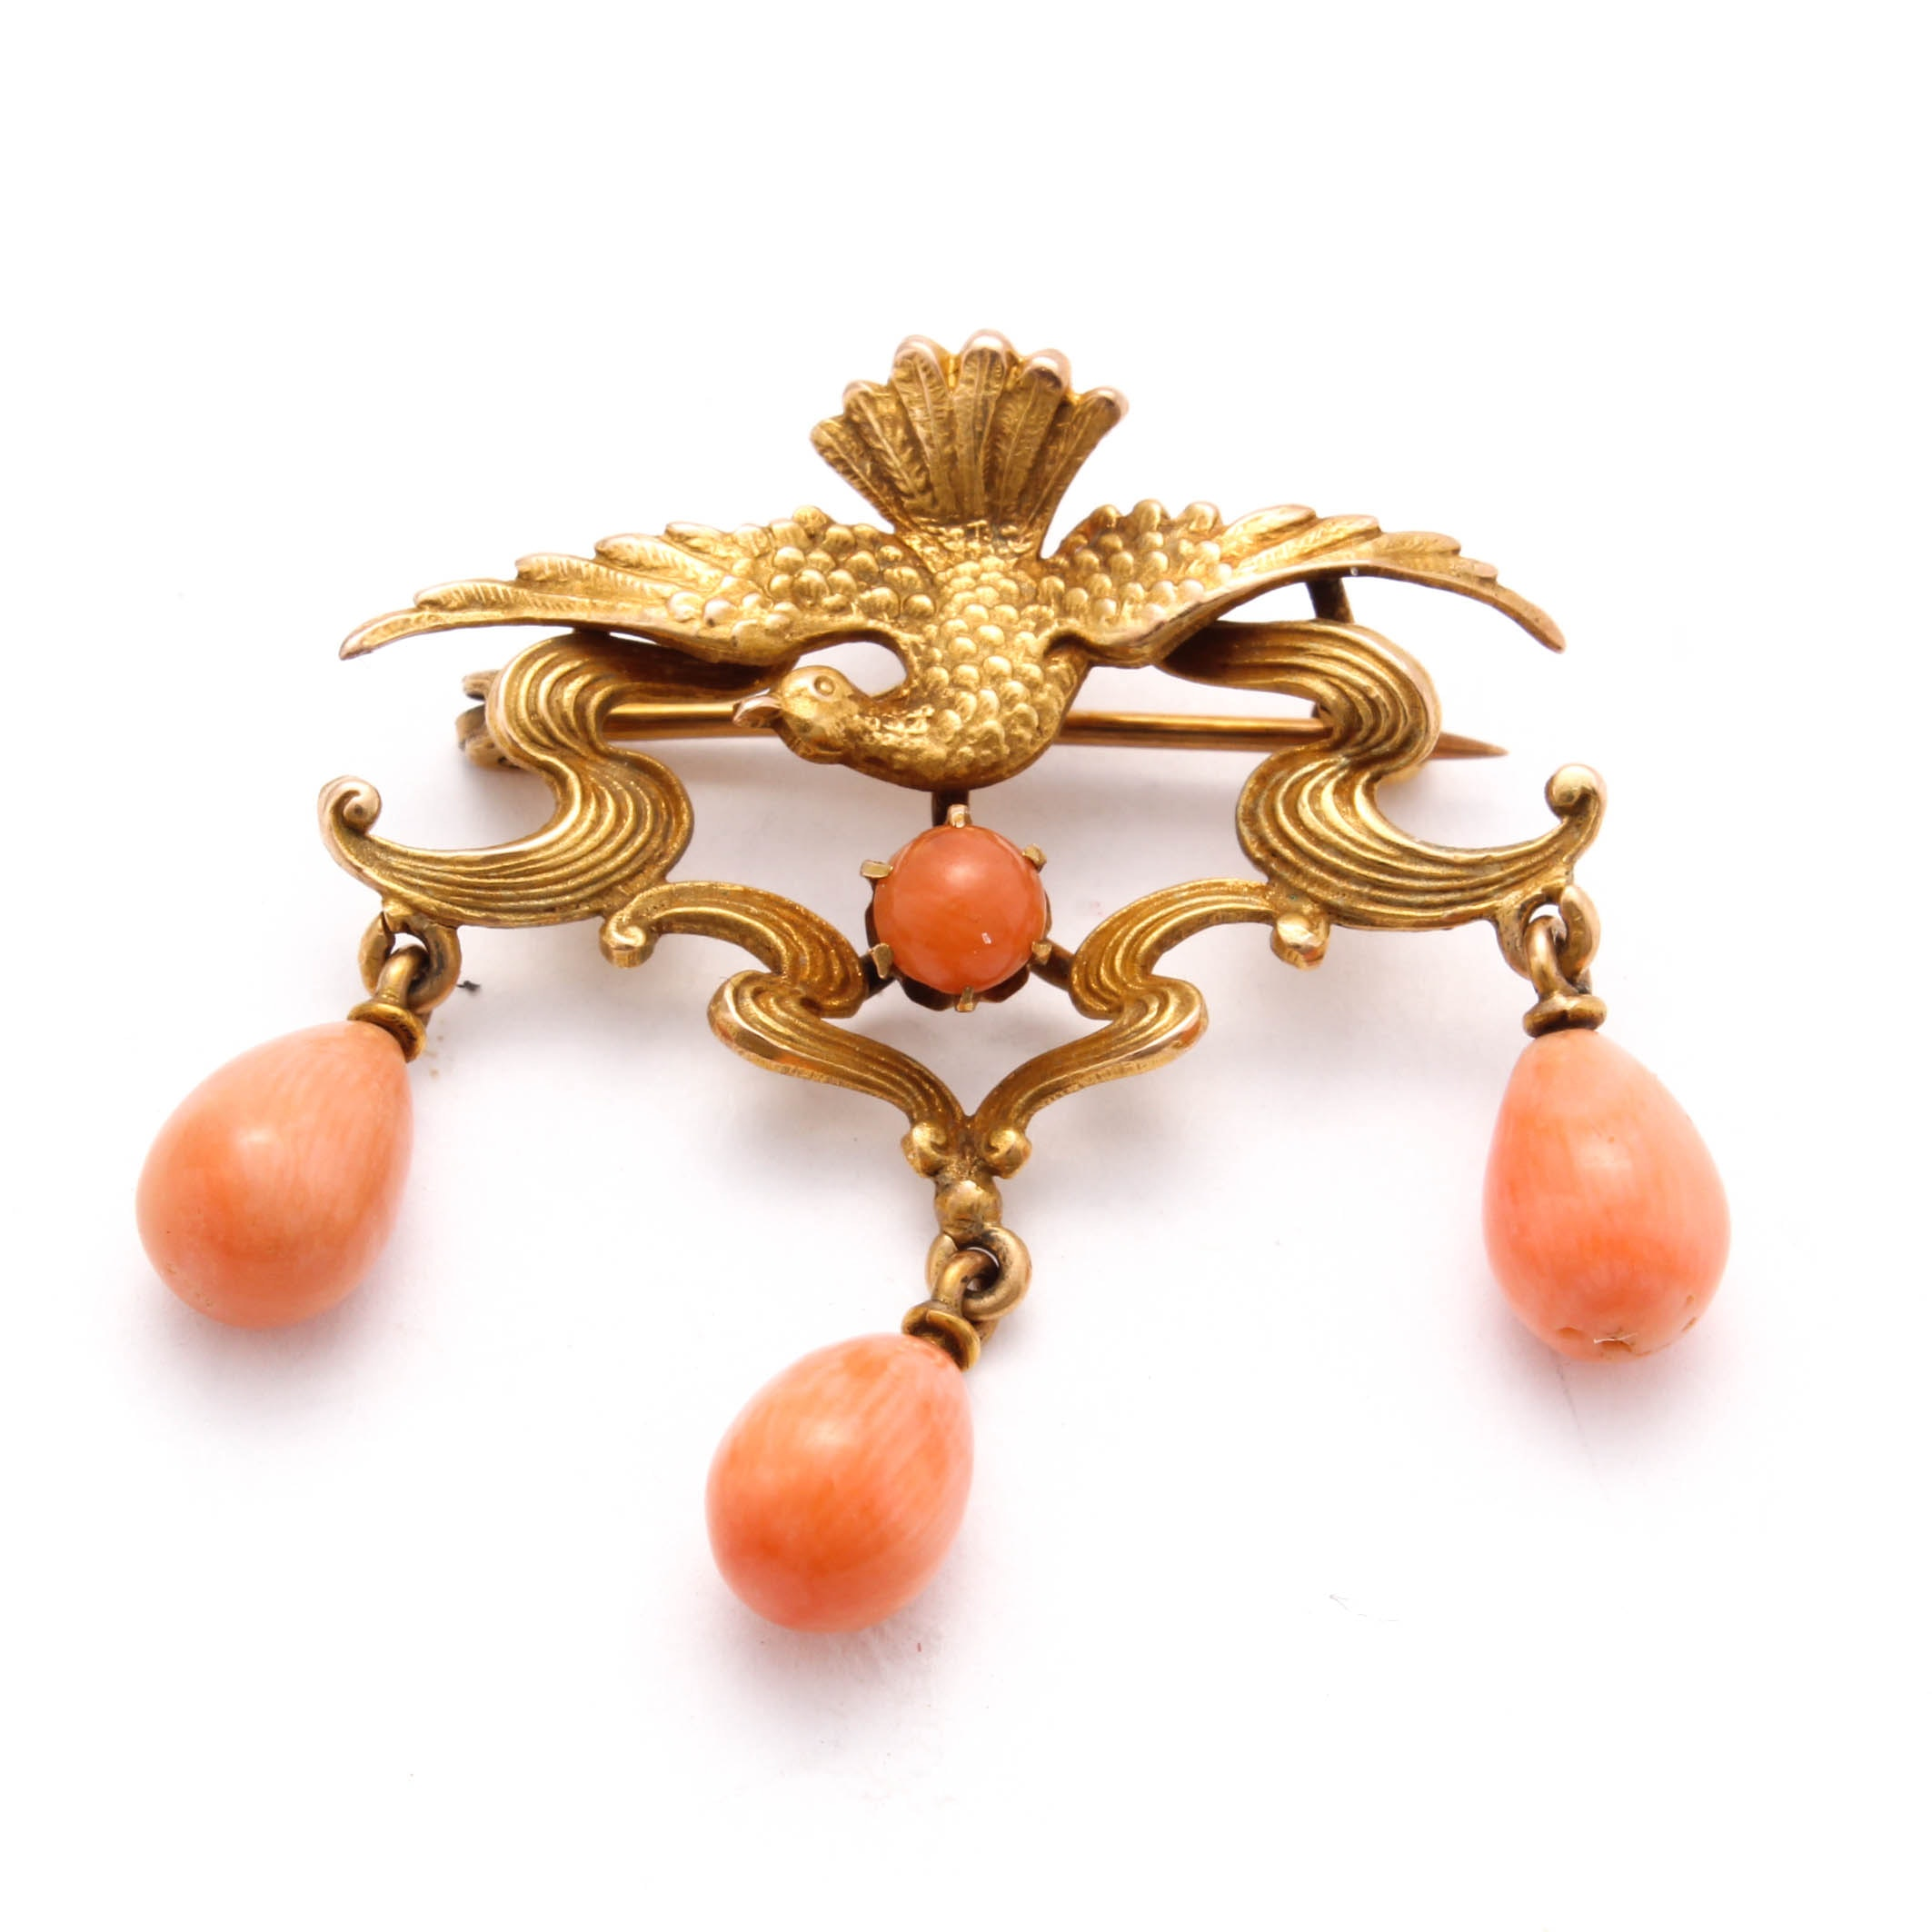 Antique 10K Yellow Gold Coral Brooch